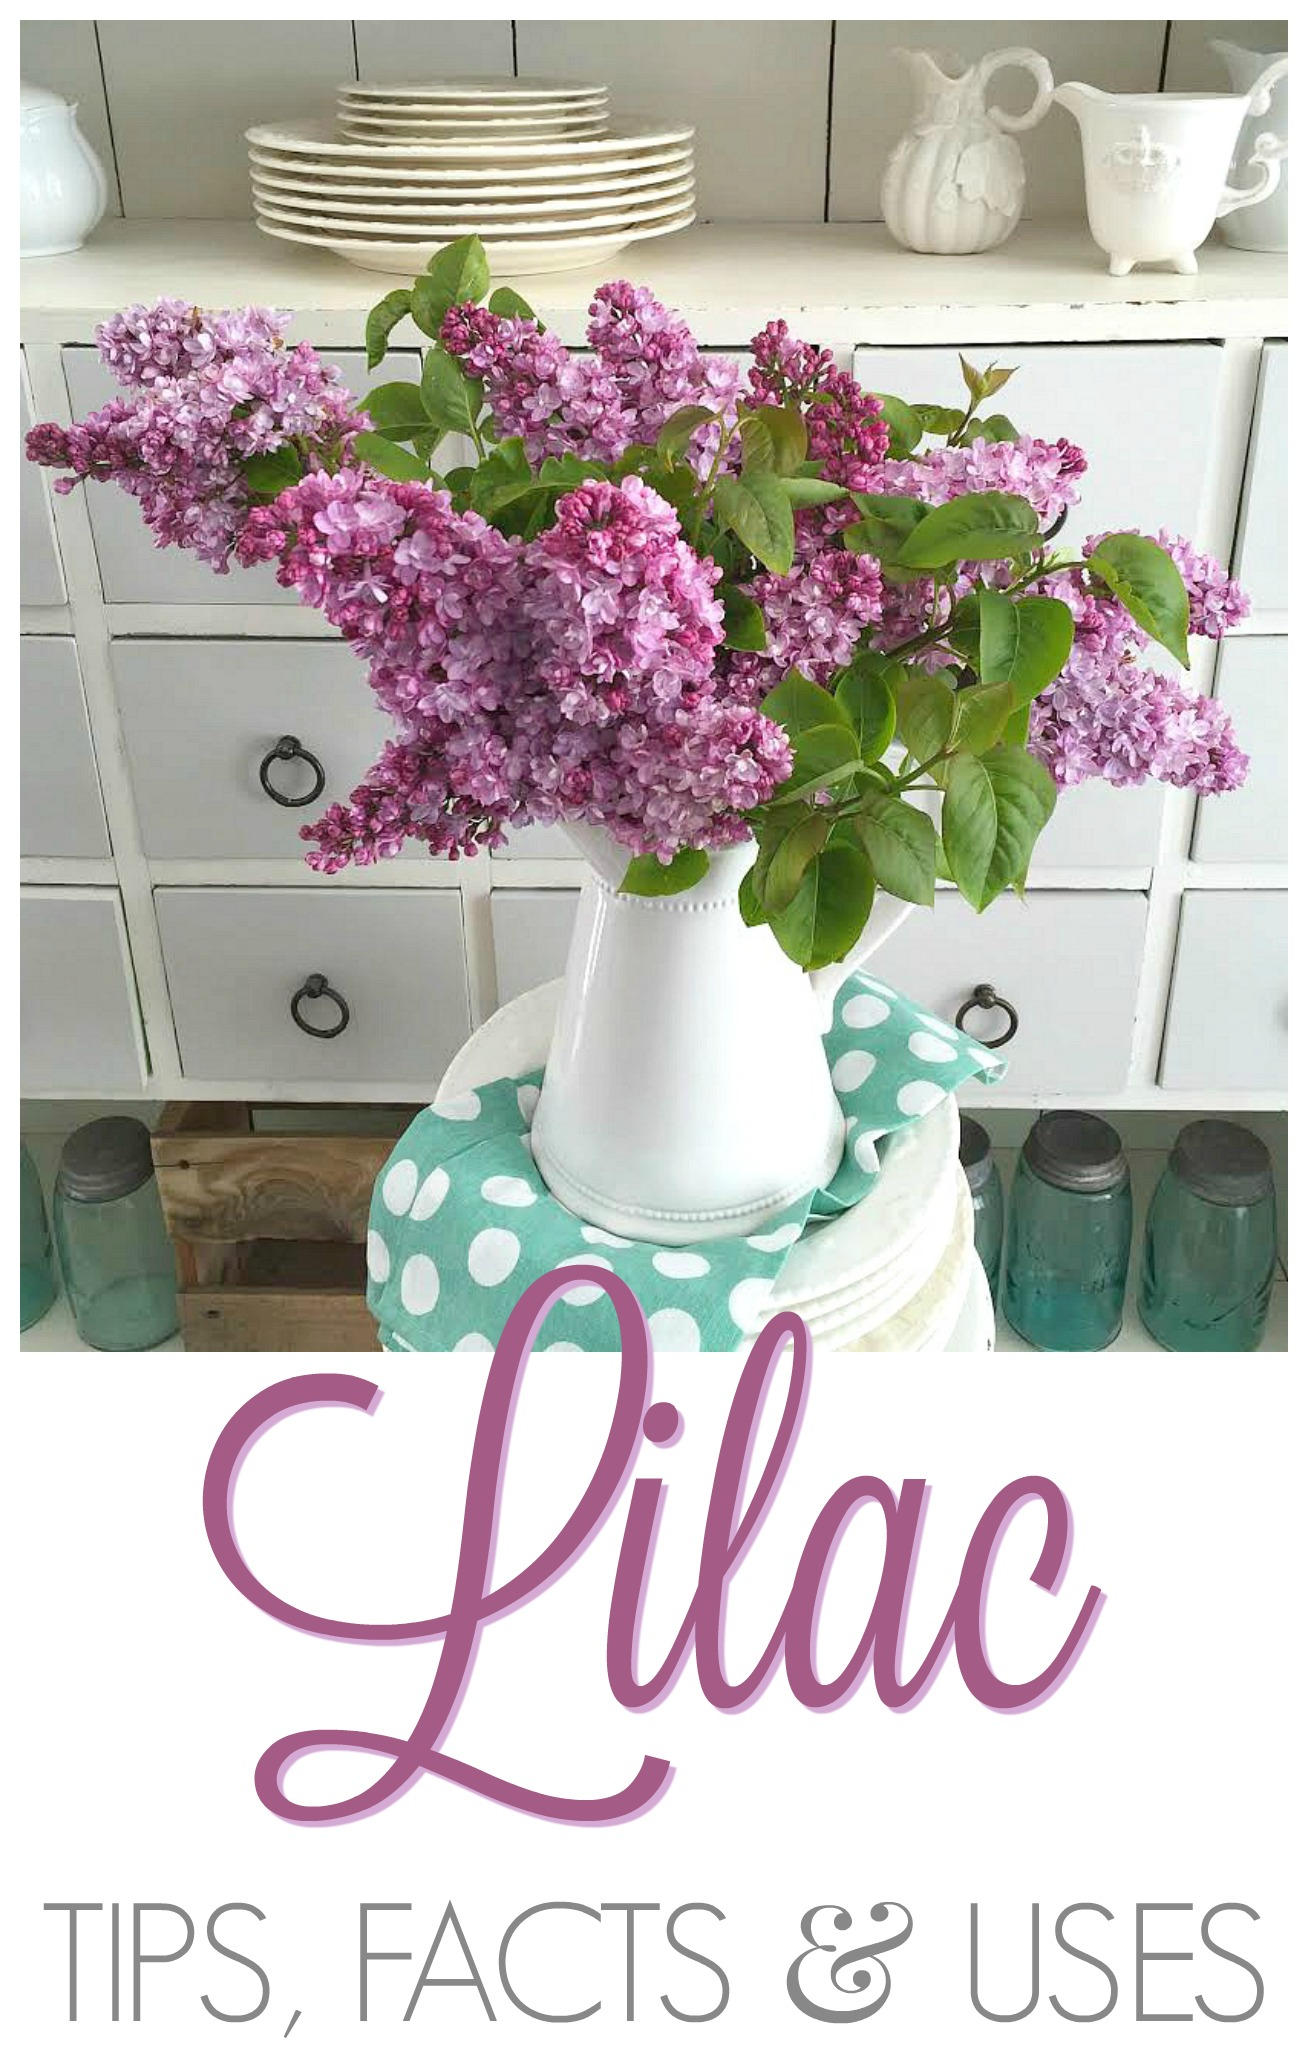 Lilac flower blossom tips facts uses - foxhollowcottage.com - cottage farmhouse living